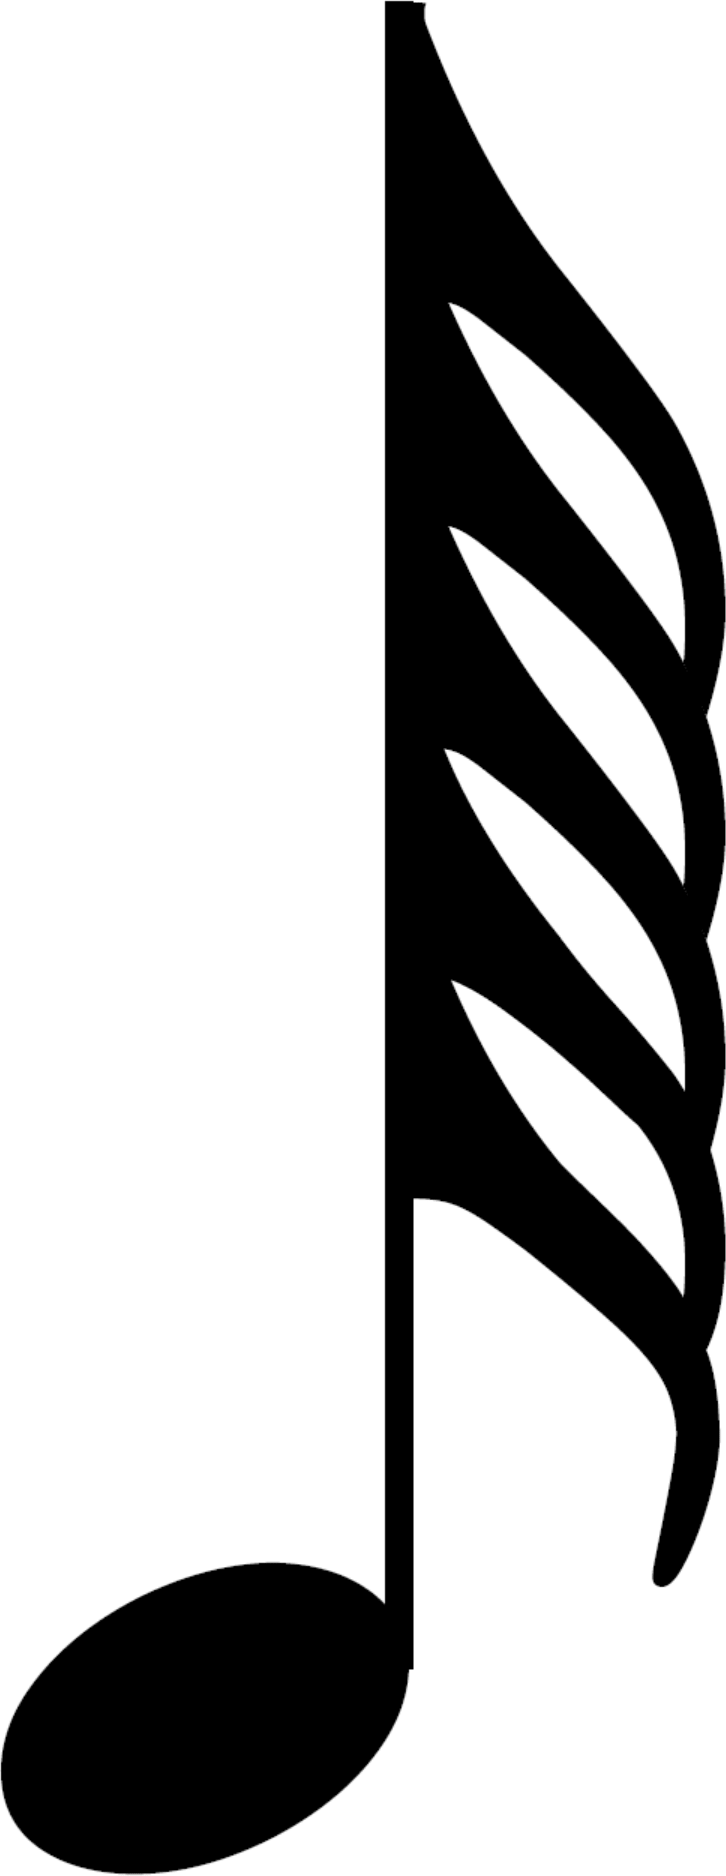 An HD one hundred and twenty eighth note, also called a semihemidemisemiquaver; a musical symbol and musical note value.